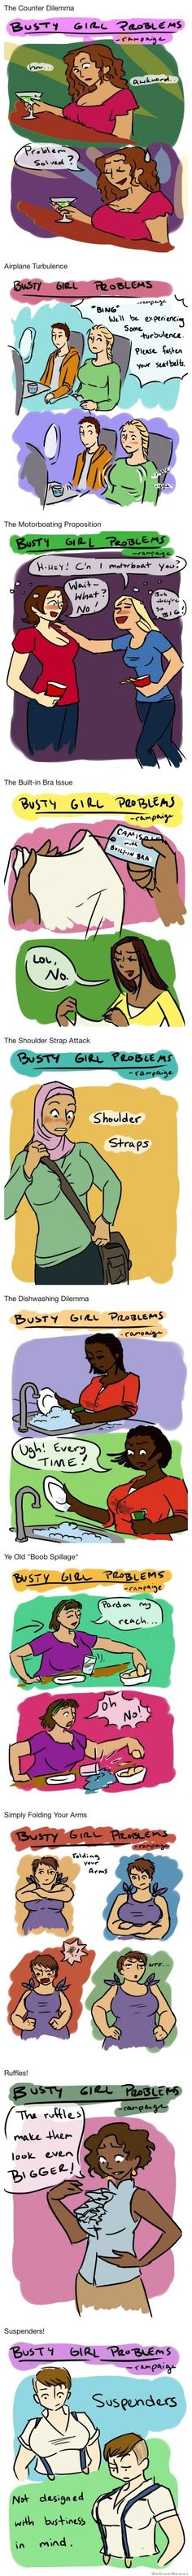 Busty girl problems... all real things.